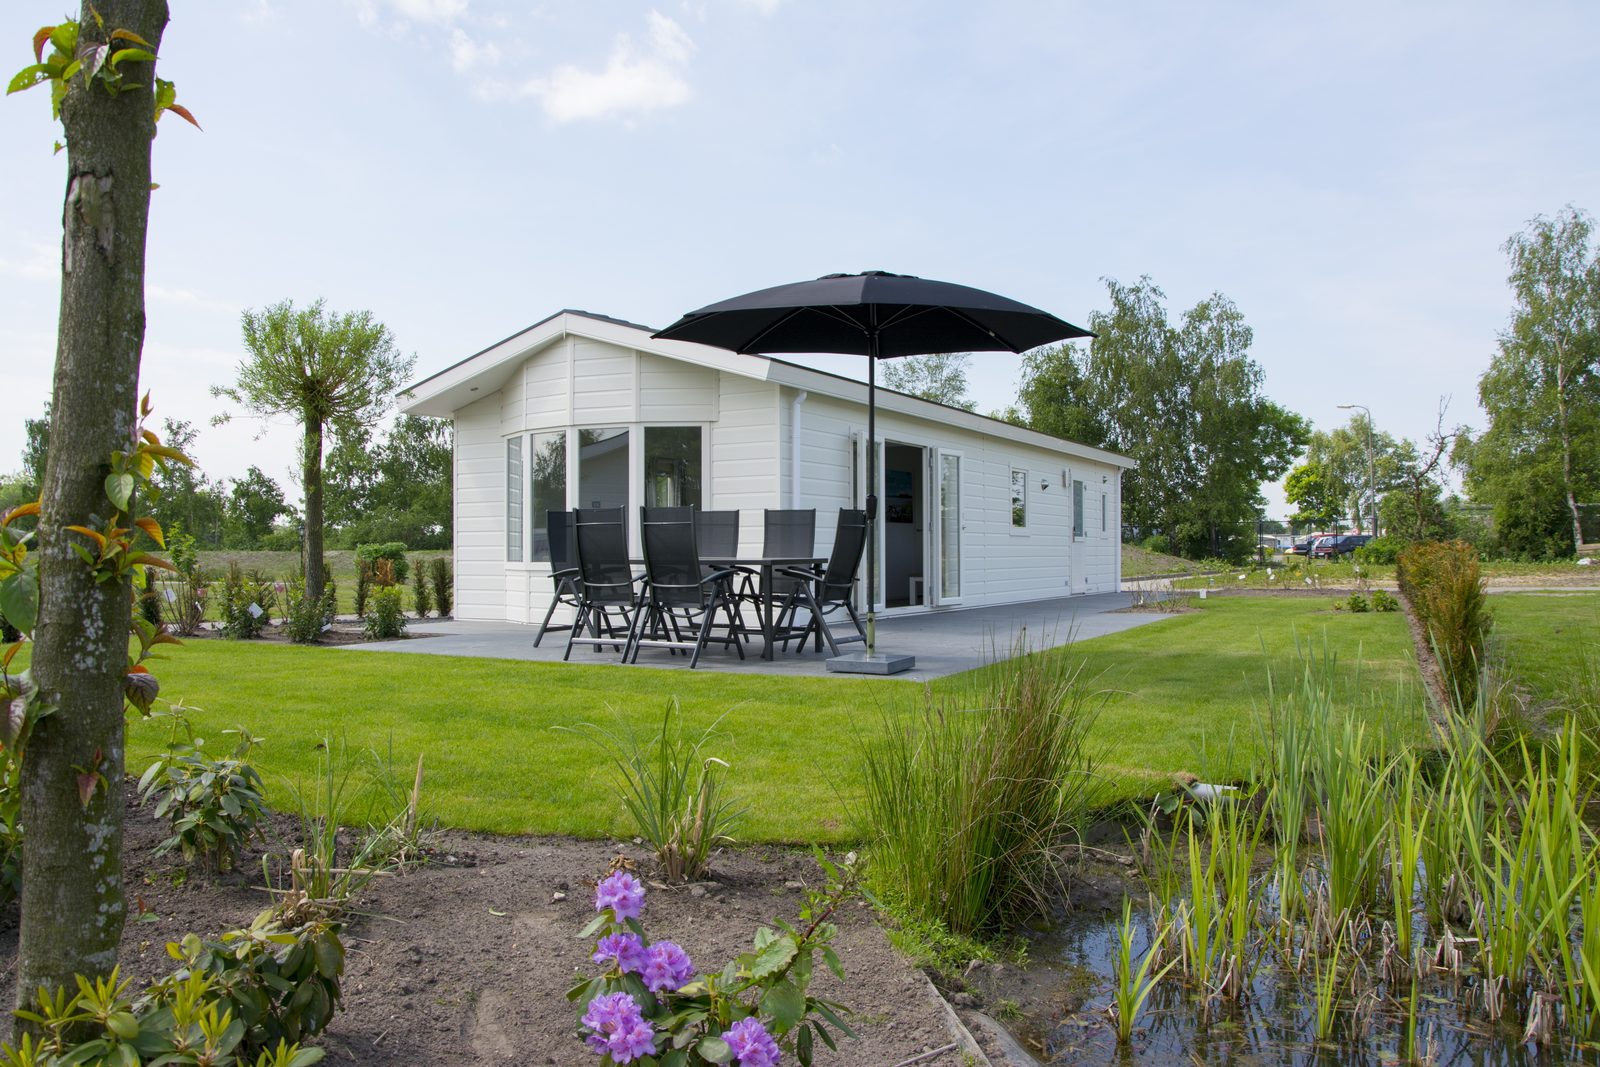 Group accommodation holiday park